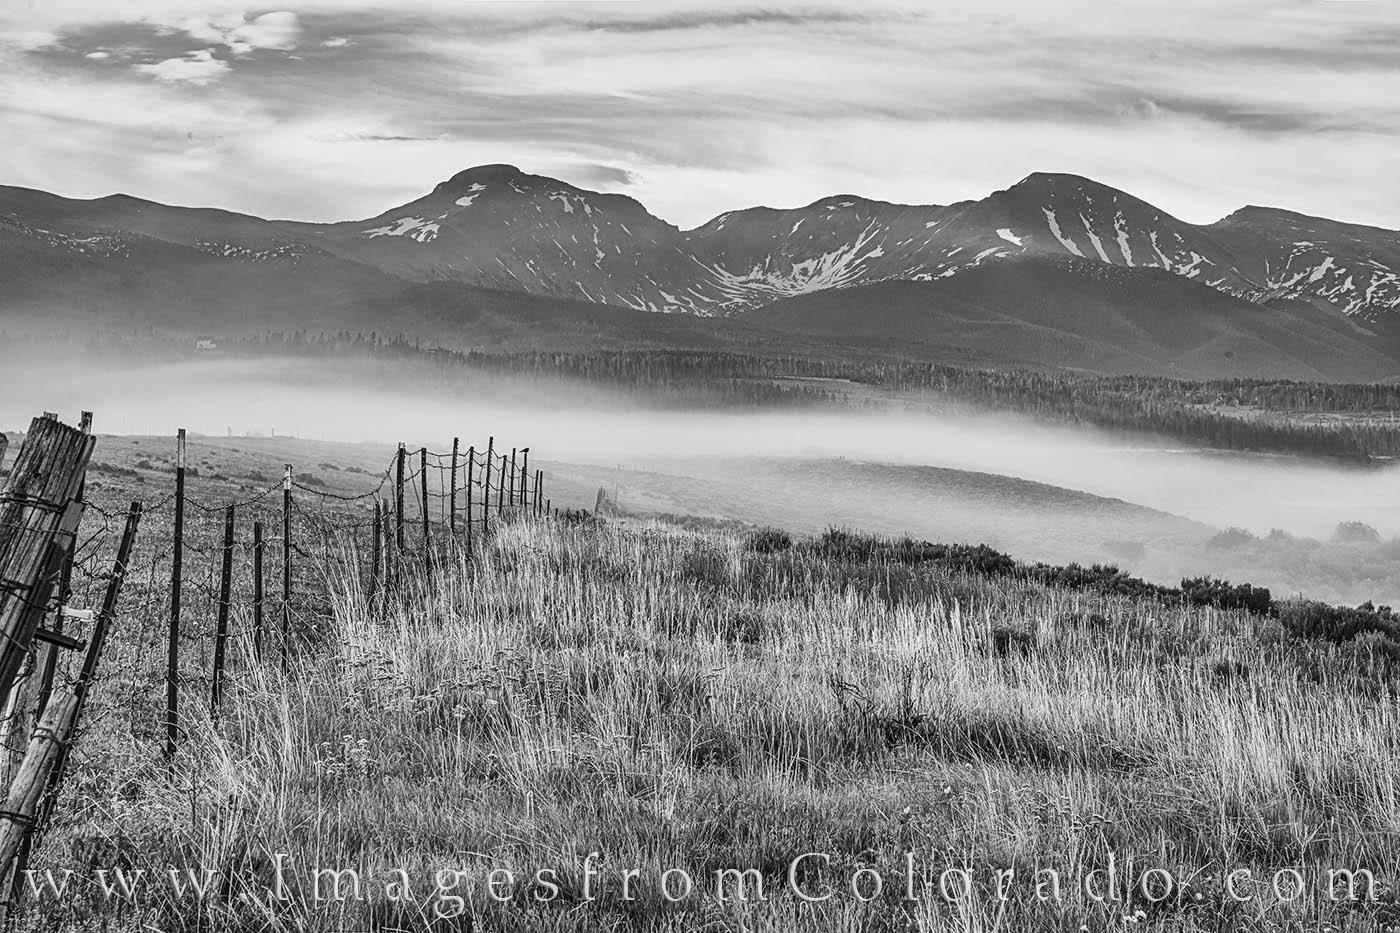 fraser valley, james peak, parry peak, fog, black and white, colorado prints, morning, summer, fence, photo